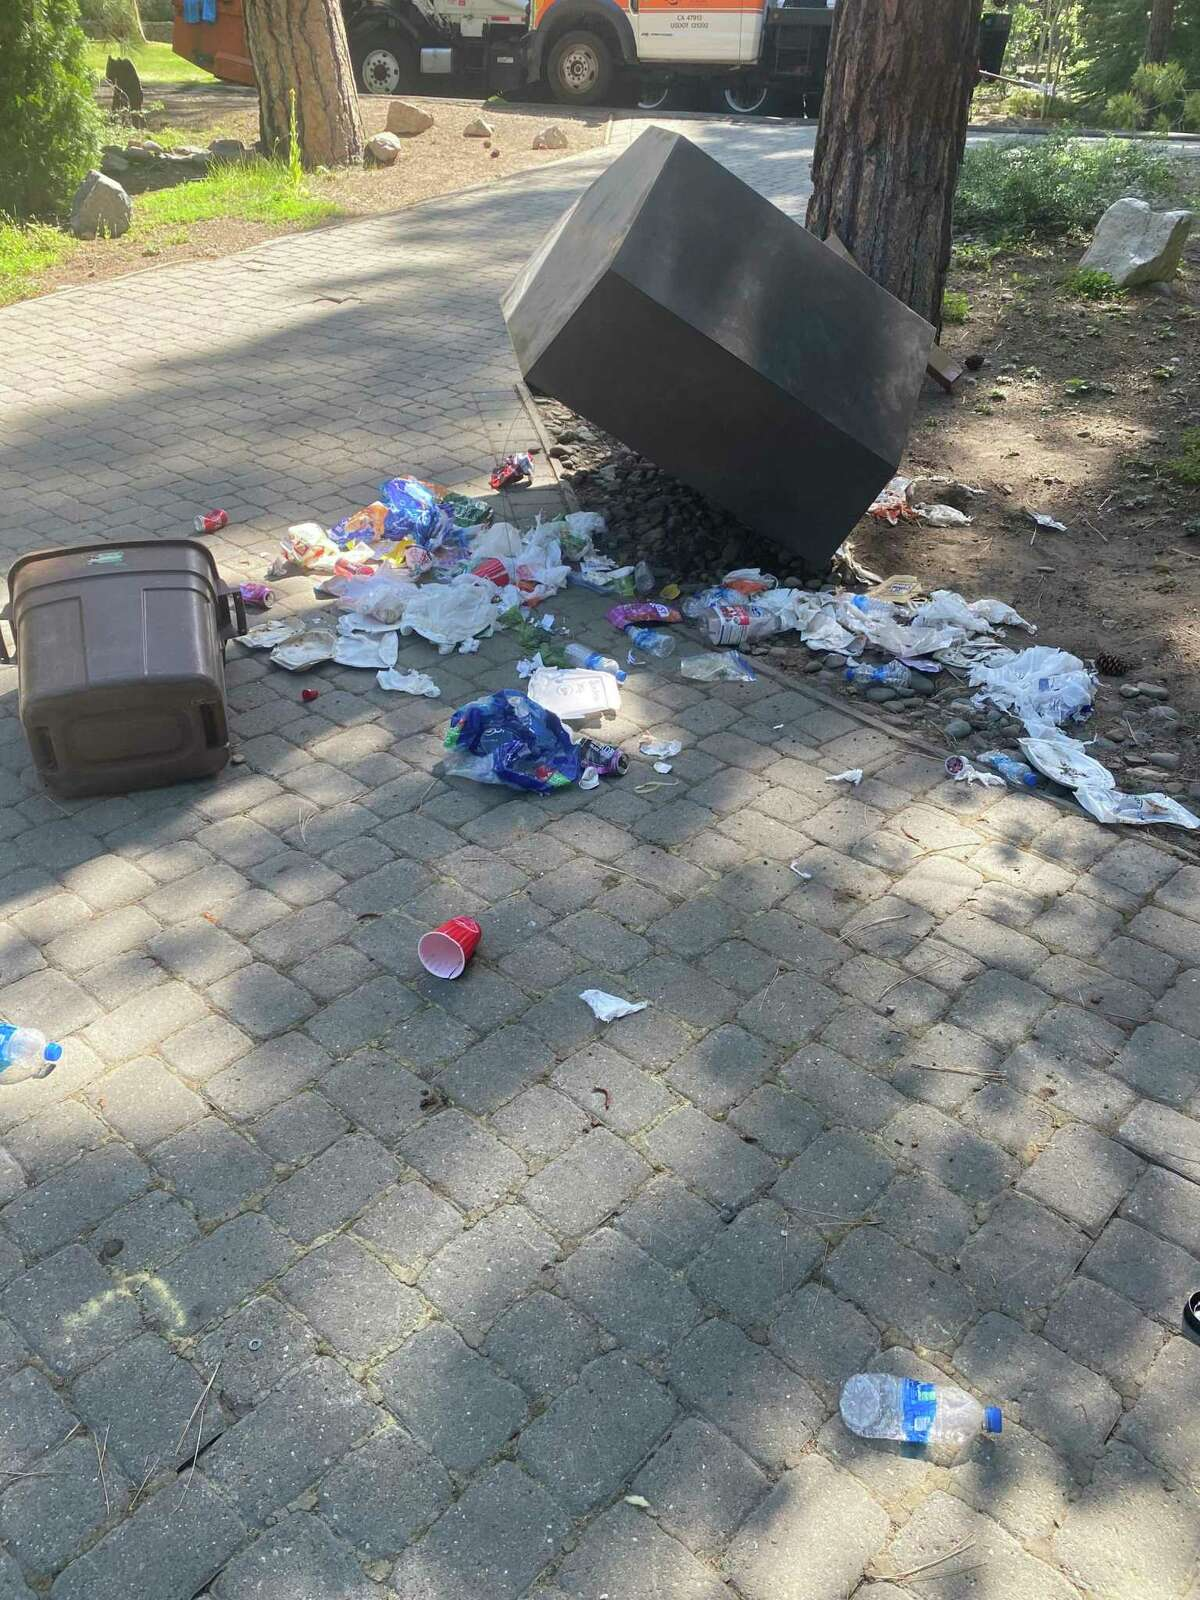 A bear-proof garbage container is knocked over in South Lake Tahoe. Many garbage bins have been attacked by bears since the city evacuated last week because of the Caldor Fire.